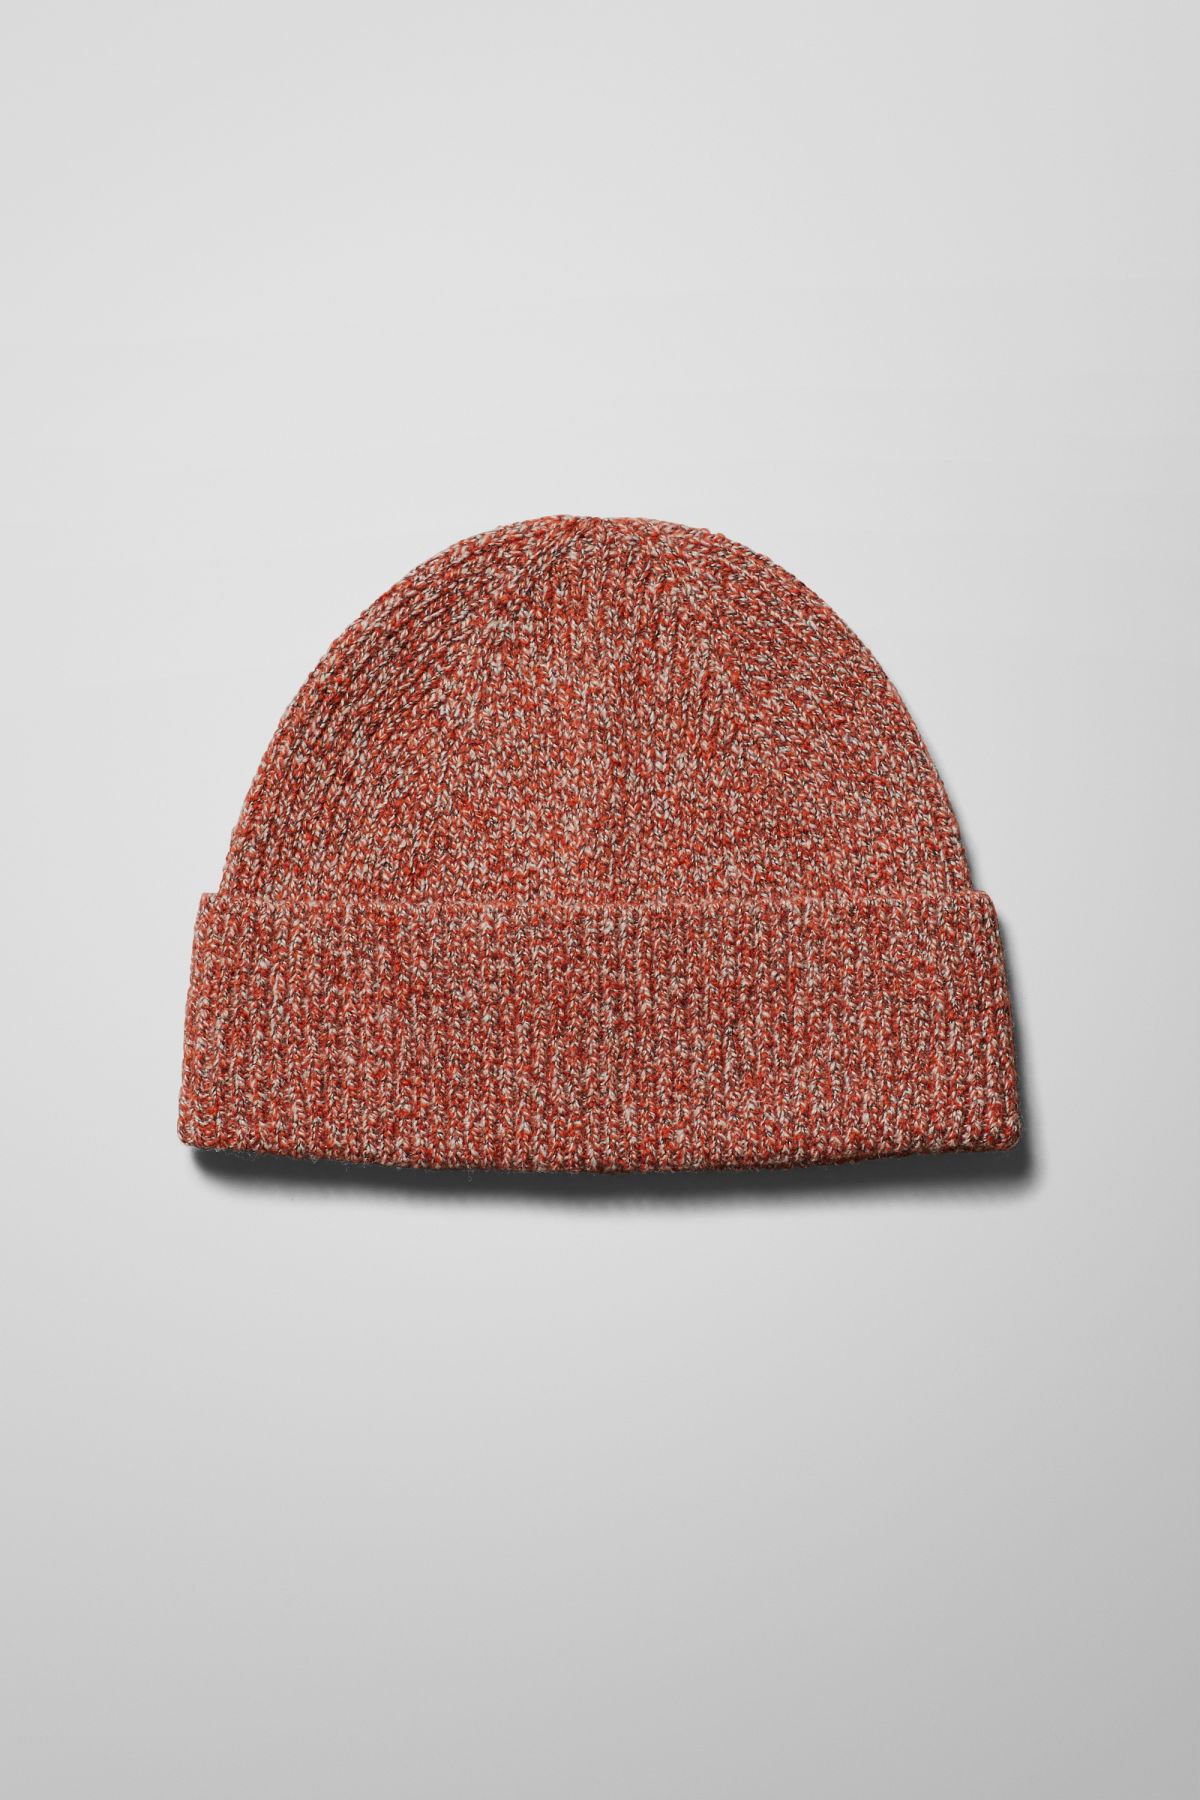 Map Knit Beanie - Orange